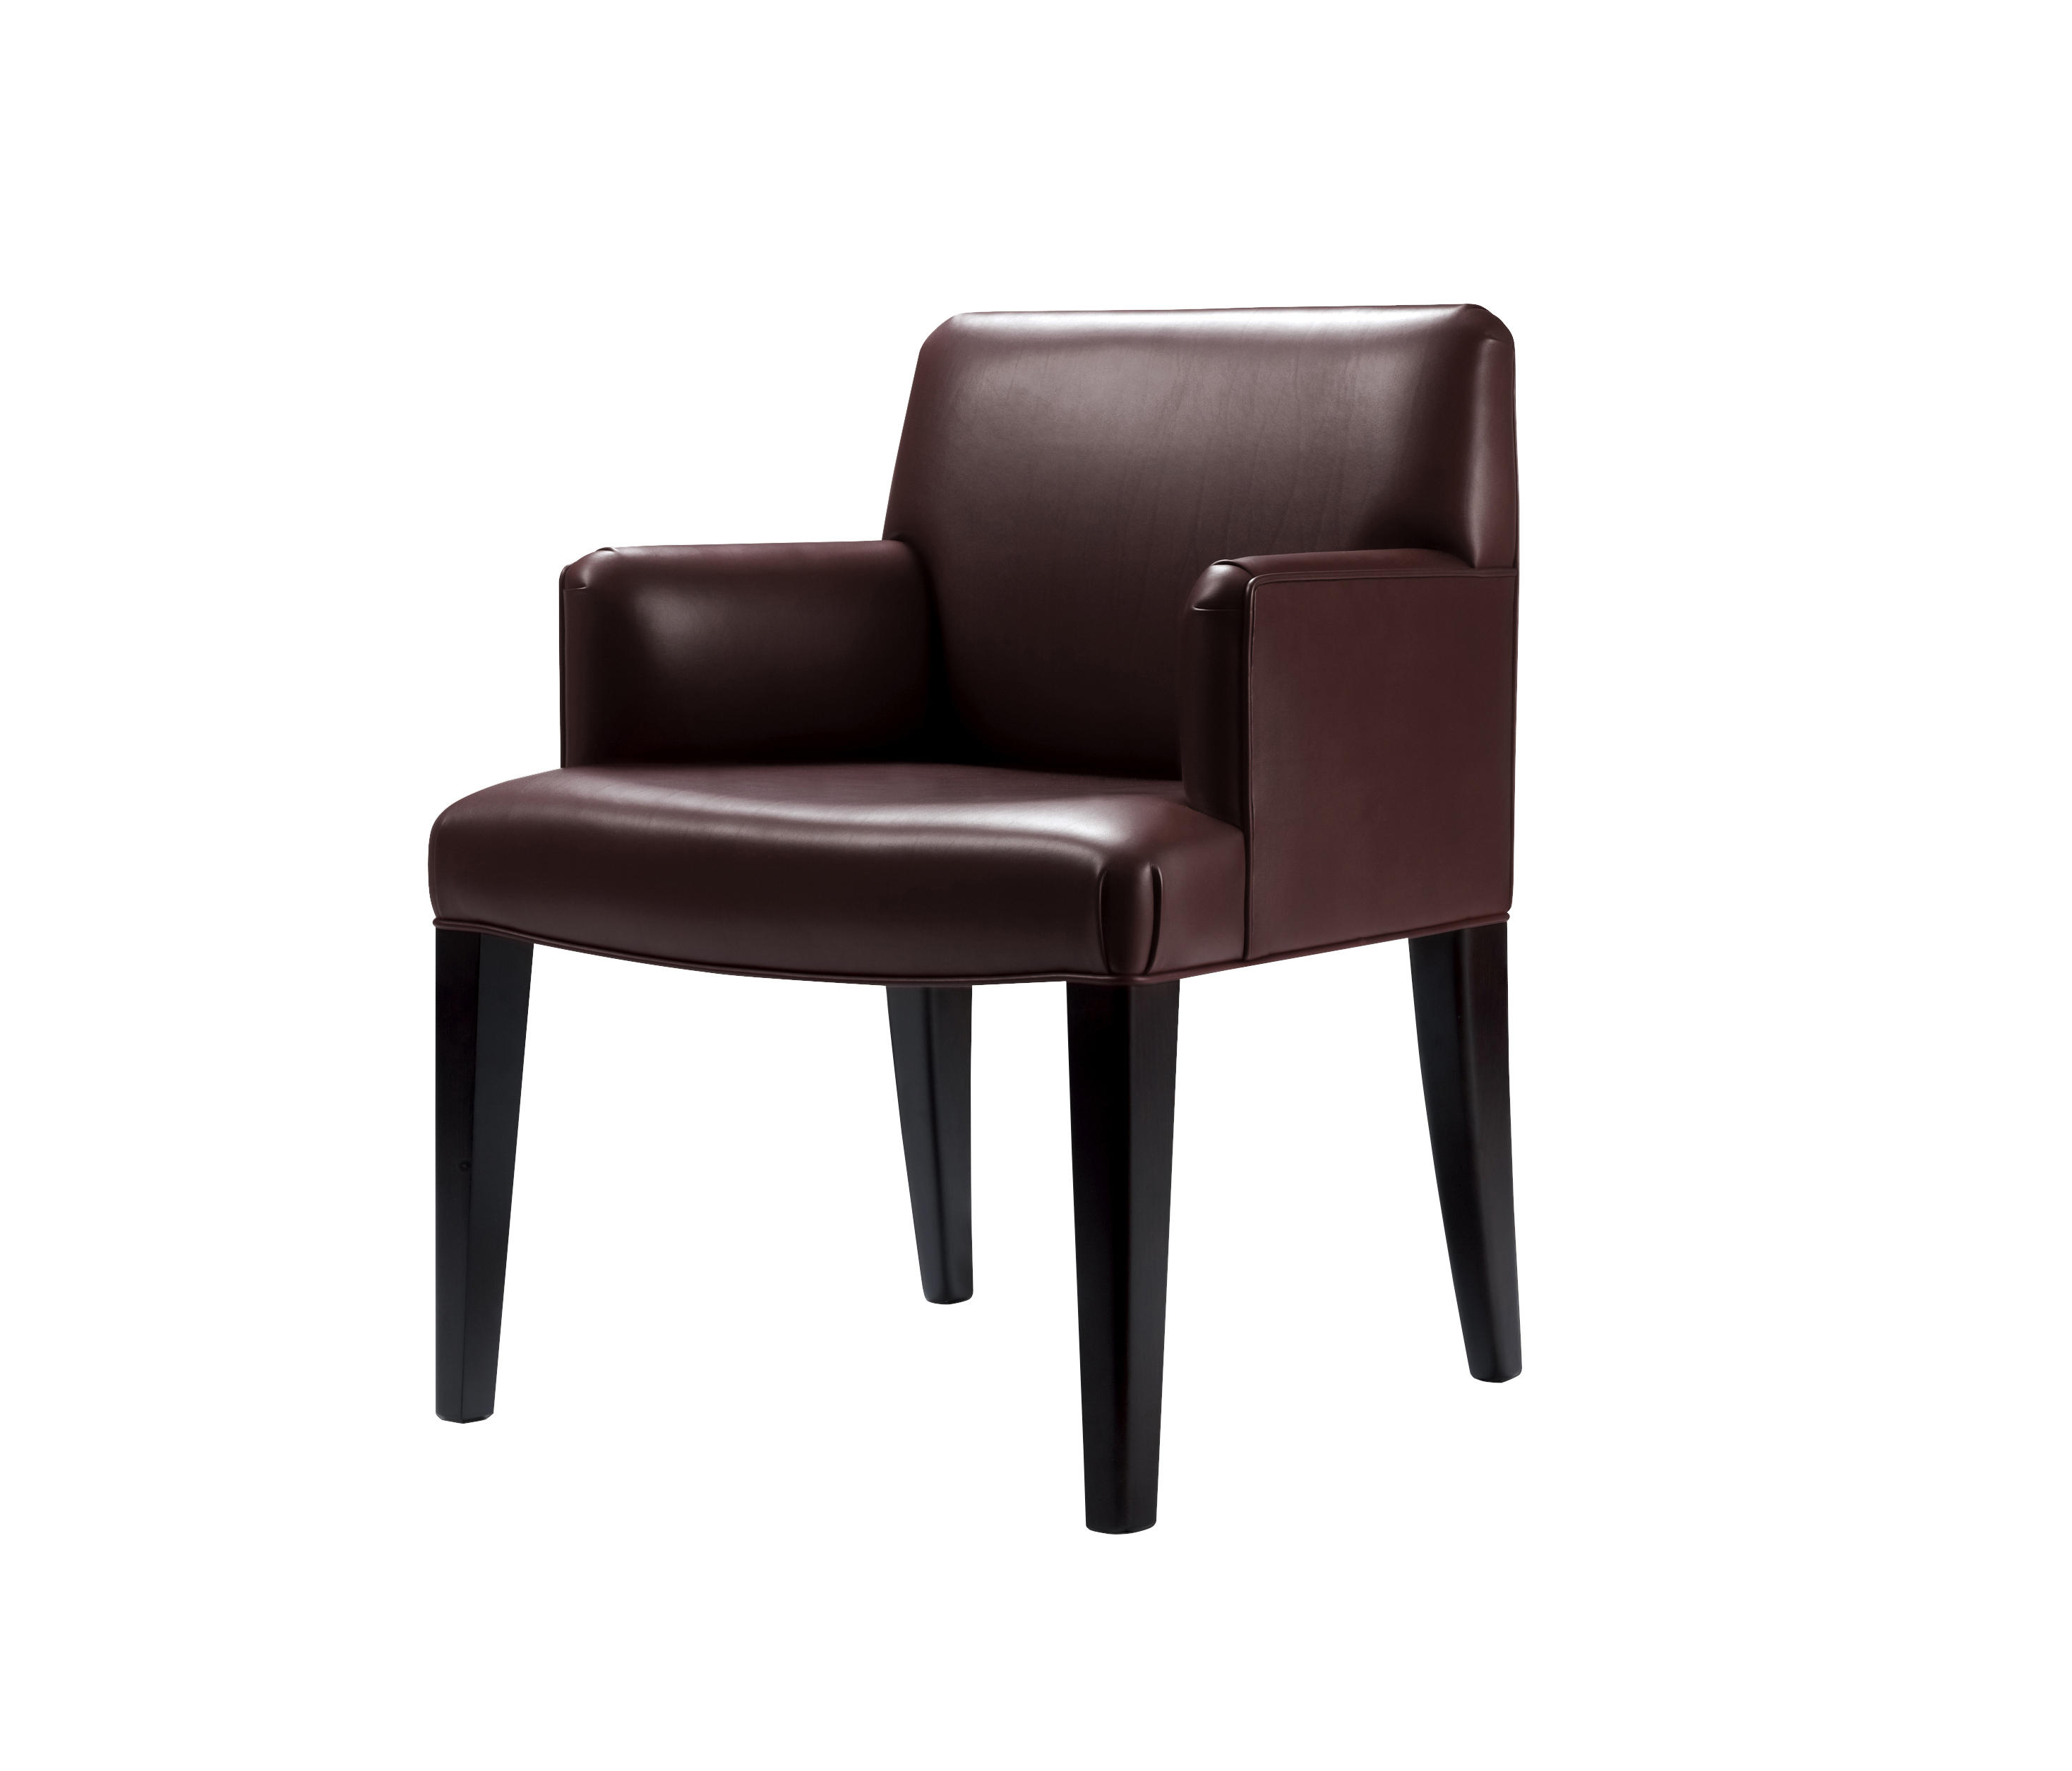 Isotta low padded backrest large chair with arms | Architonic